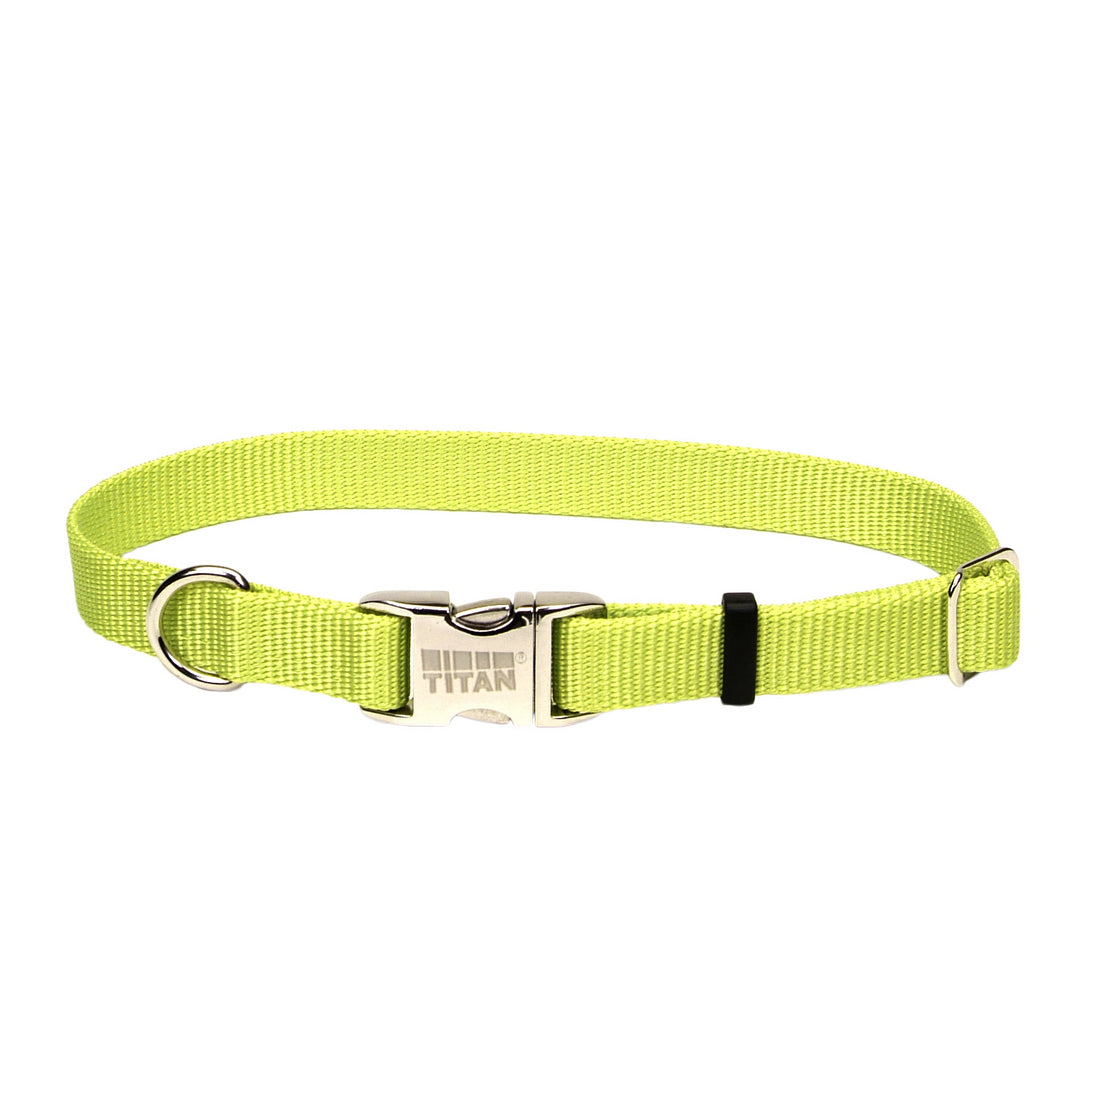 Coastal Adjustable Nylon Collar with Metal Buckle Large Lime